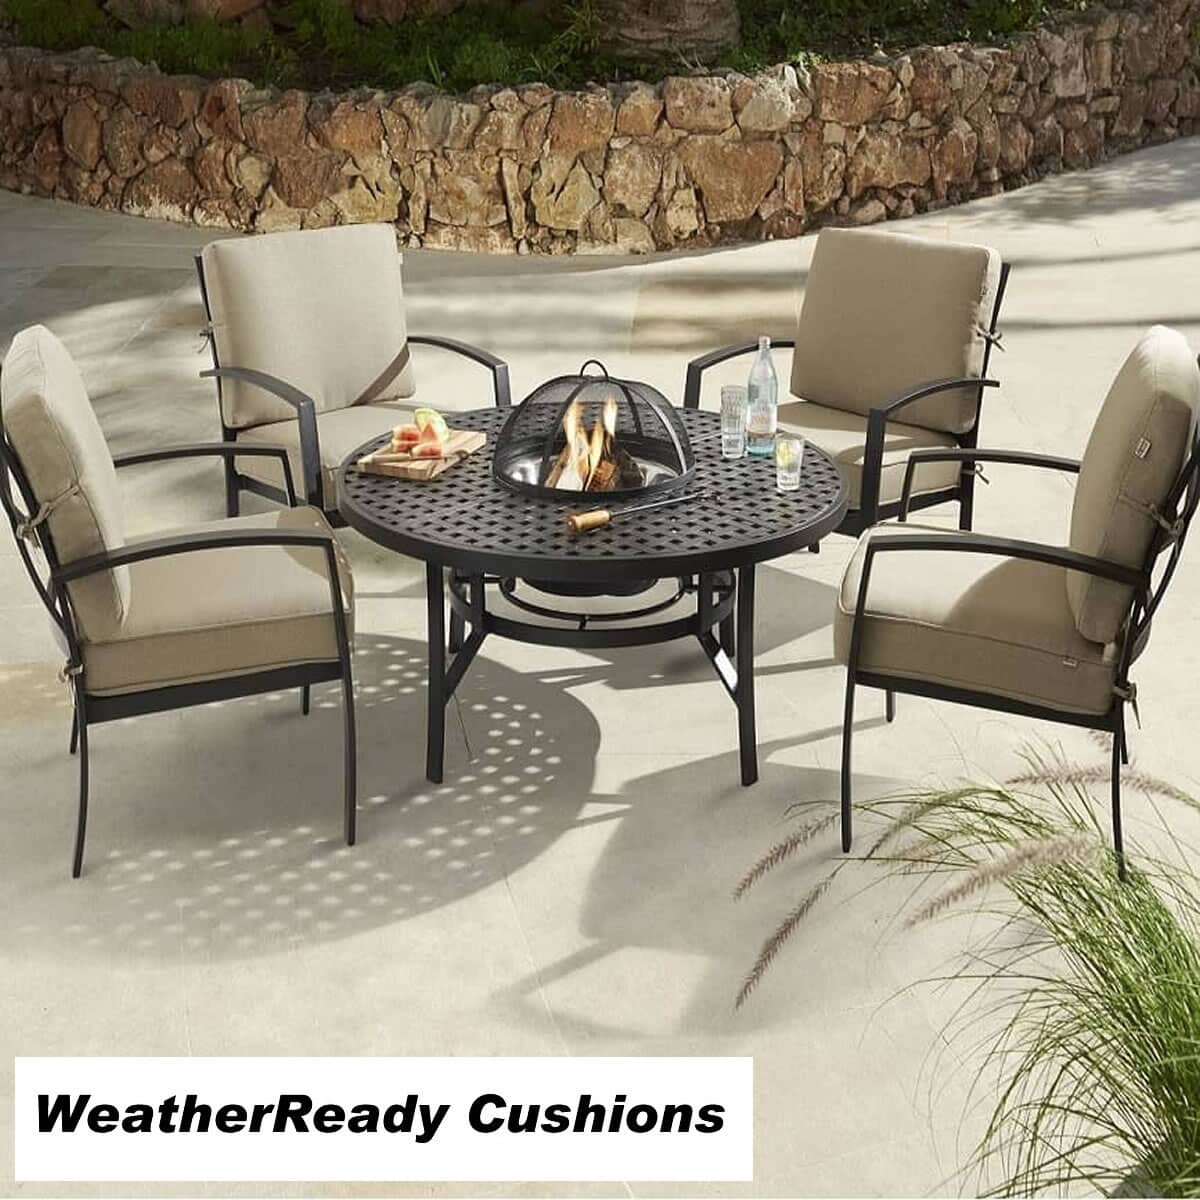 hartman jamie oliver fire pit set weather ready cushions bronze biscuit joset18wrcbb02. Black Bedroom Furniture Sets. Home Design Ideas